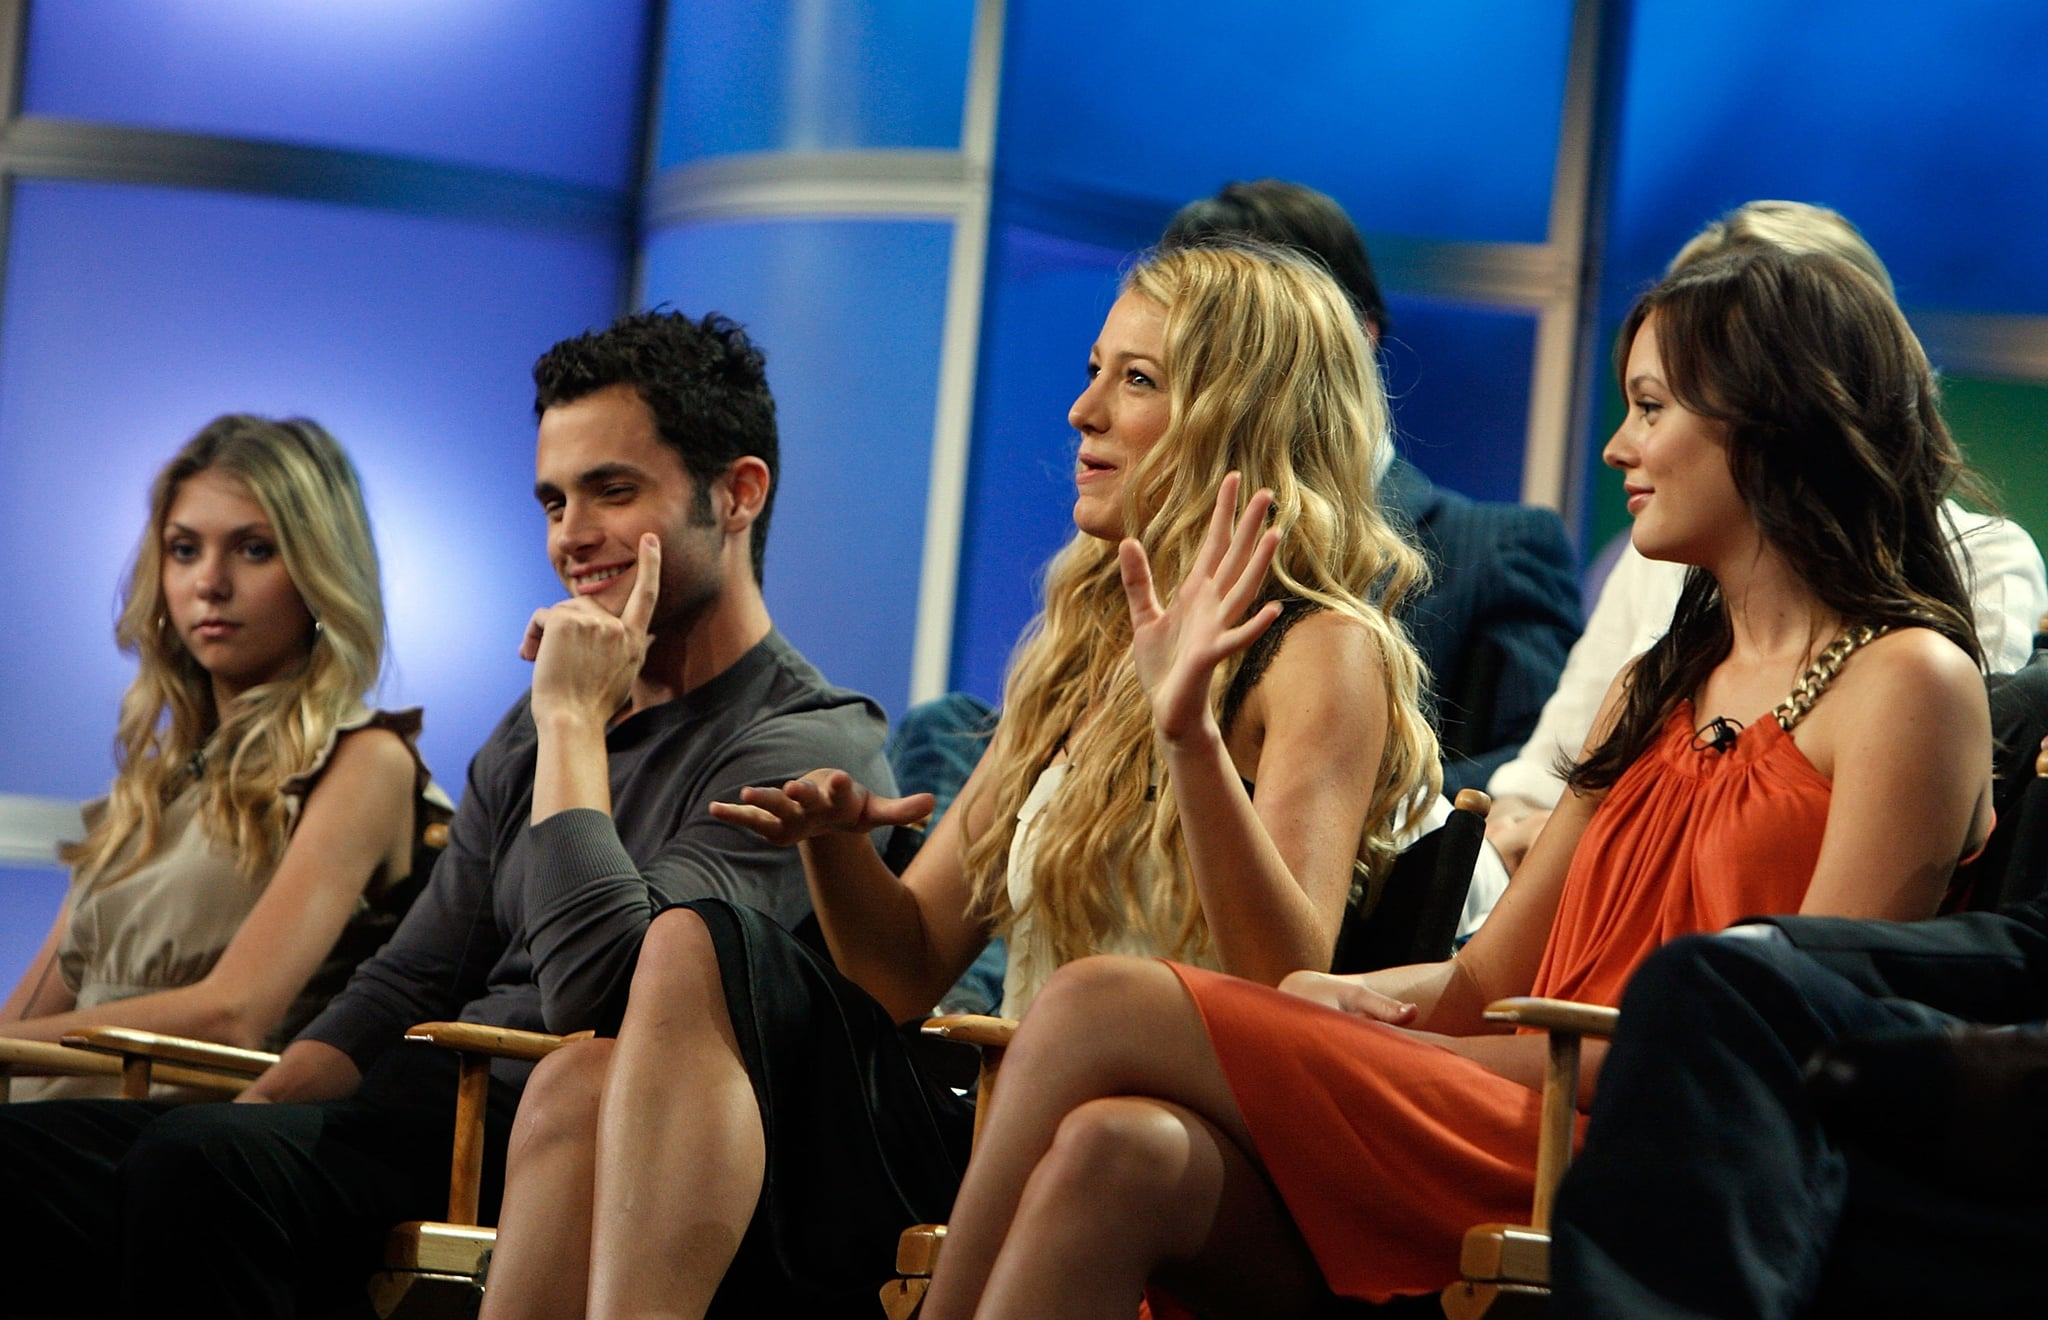 Blake Lively addressed an audience on entertainment reports in LA during a July 2007 TCA event.